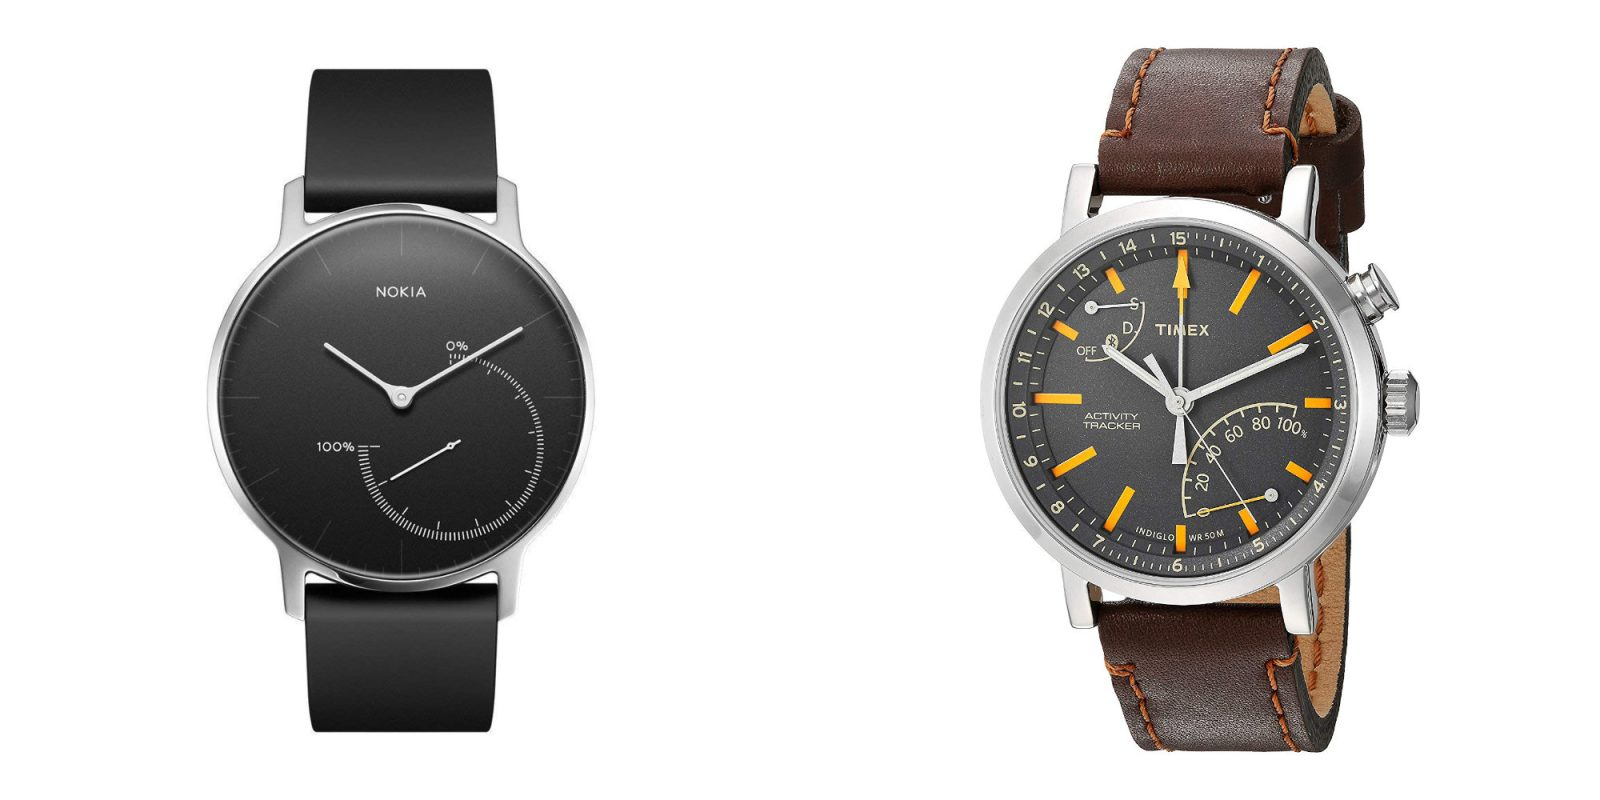 Nokia's Withings Steel Smartwatch Works W/ HealthKit For